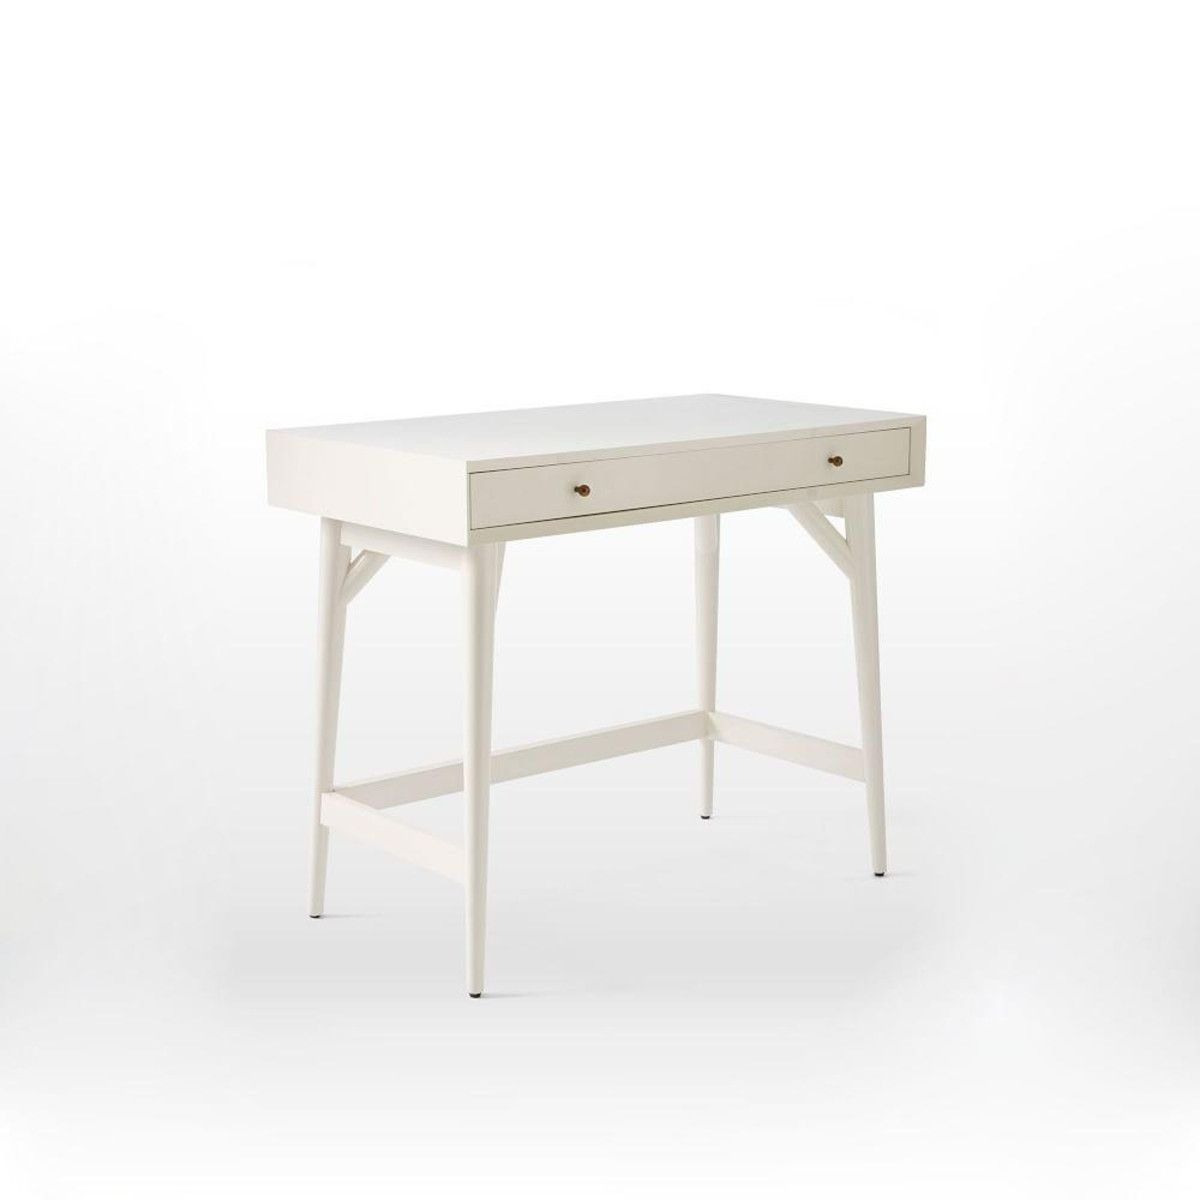 Mid Century Mini Desk White In 2020 Mini Desk White Desks Mid Century Desk